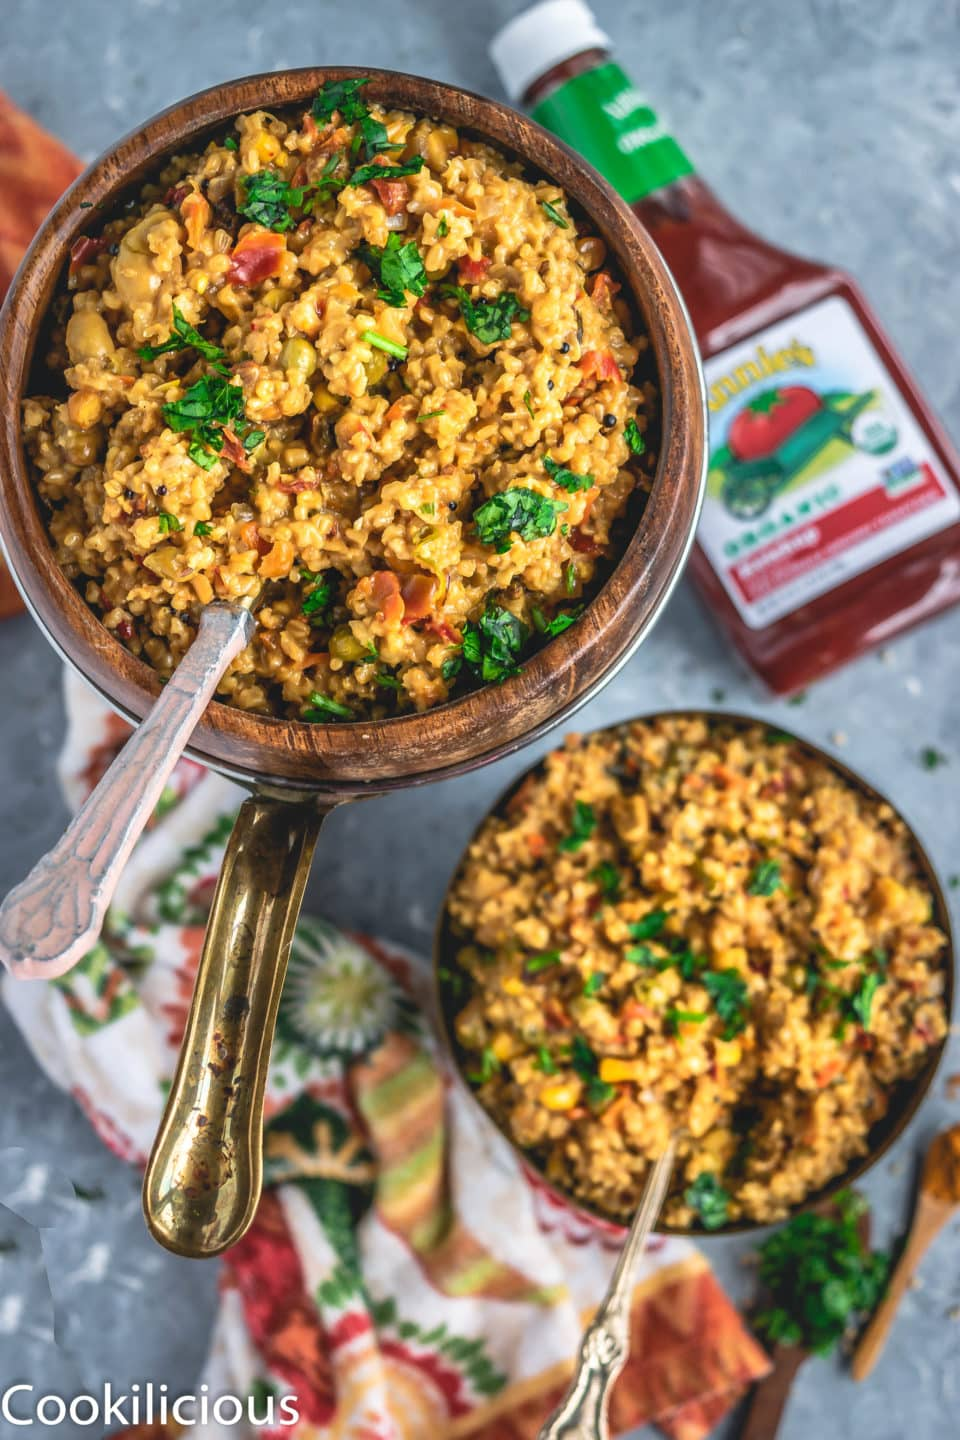 2 bowls of Instant Pot Oats & Vegetable Upma with a ketchup bottle on the side